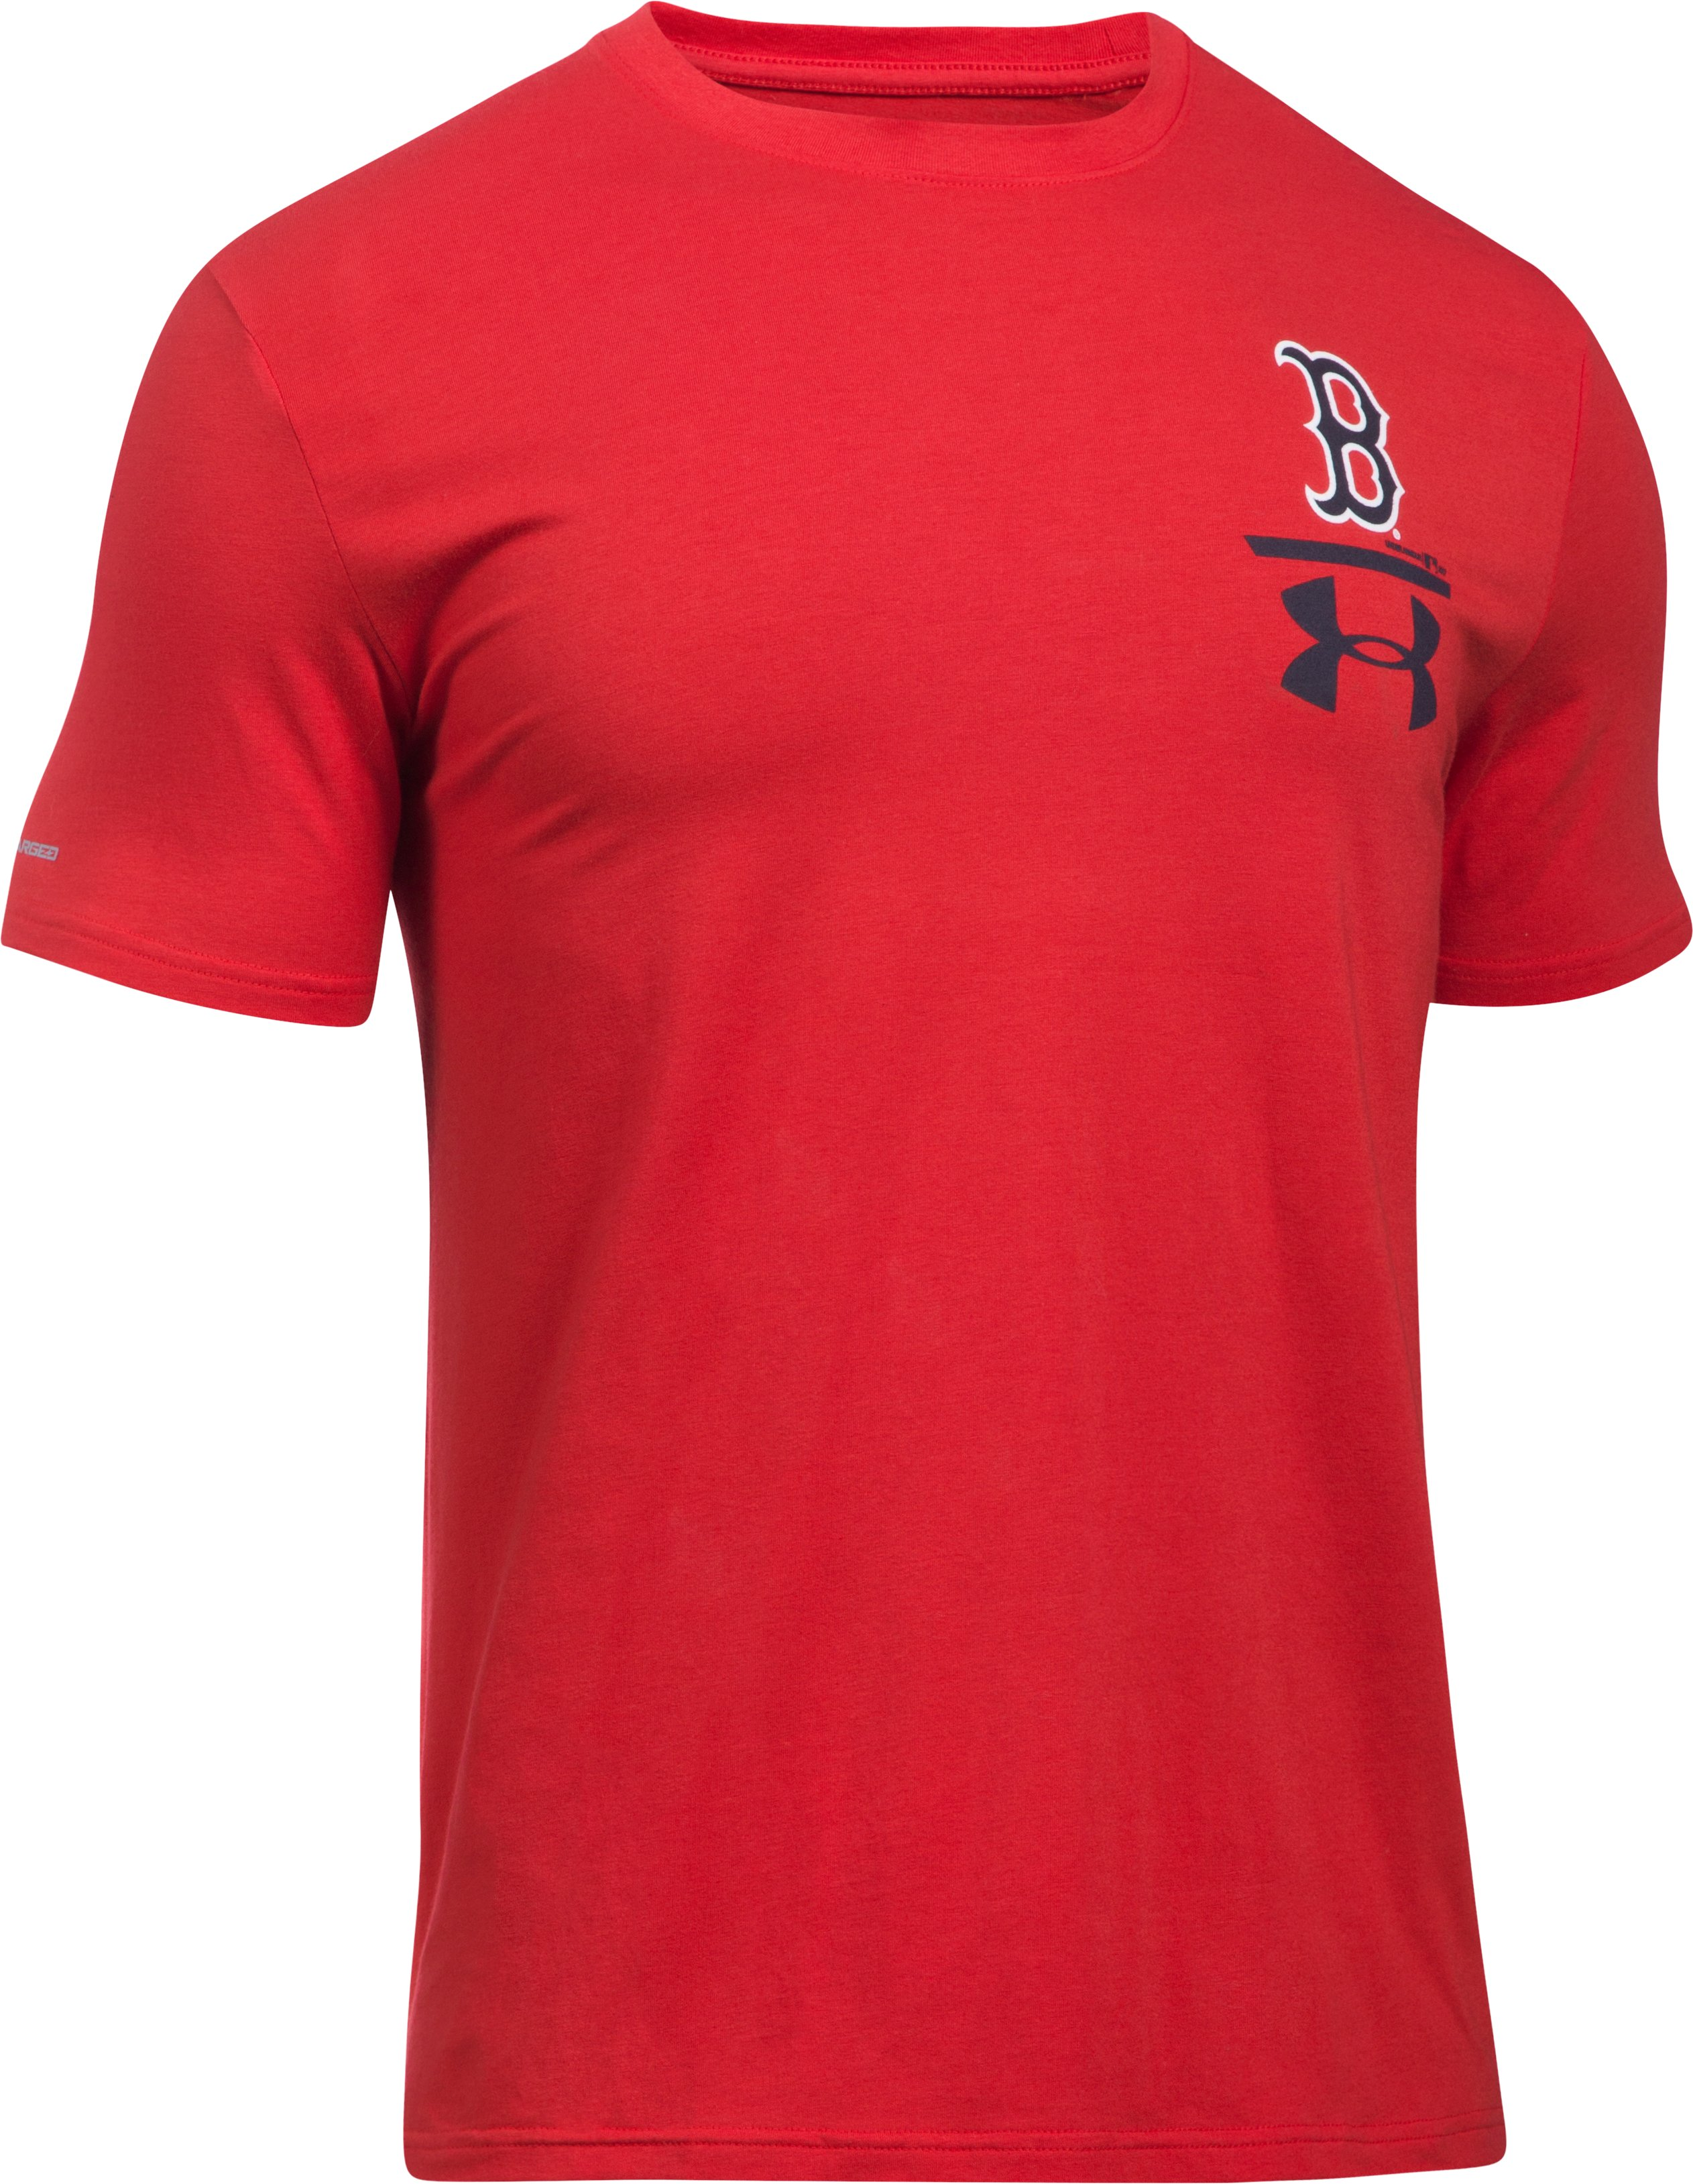 Men's Boston Red Sox Logo T-Shirt, Red, undefined